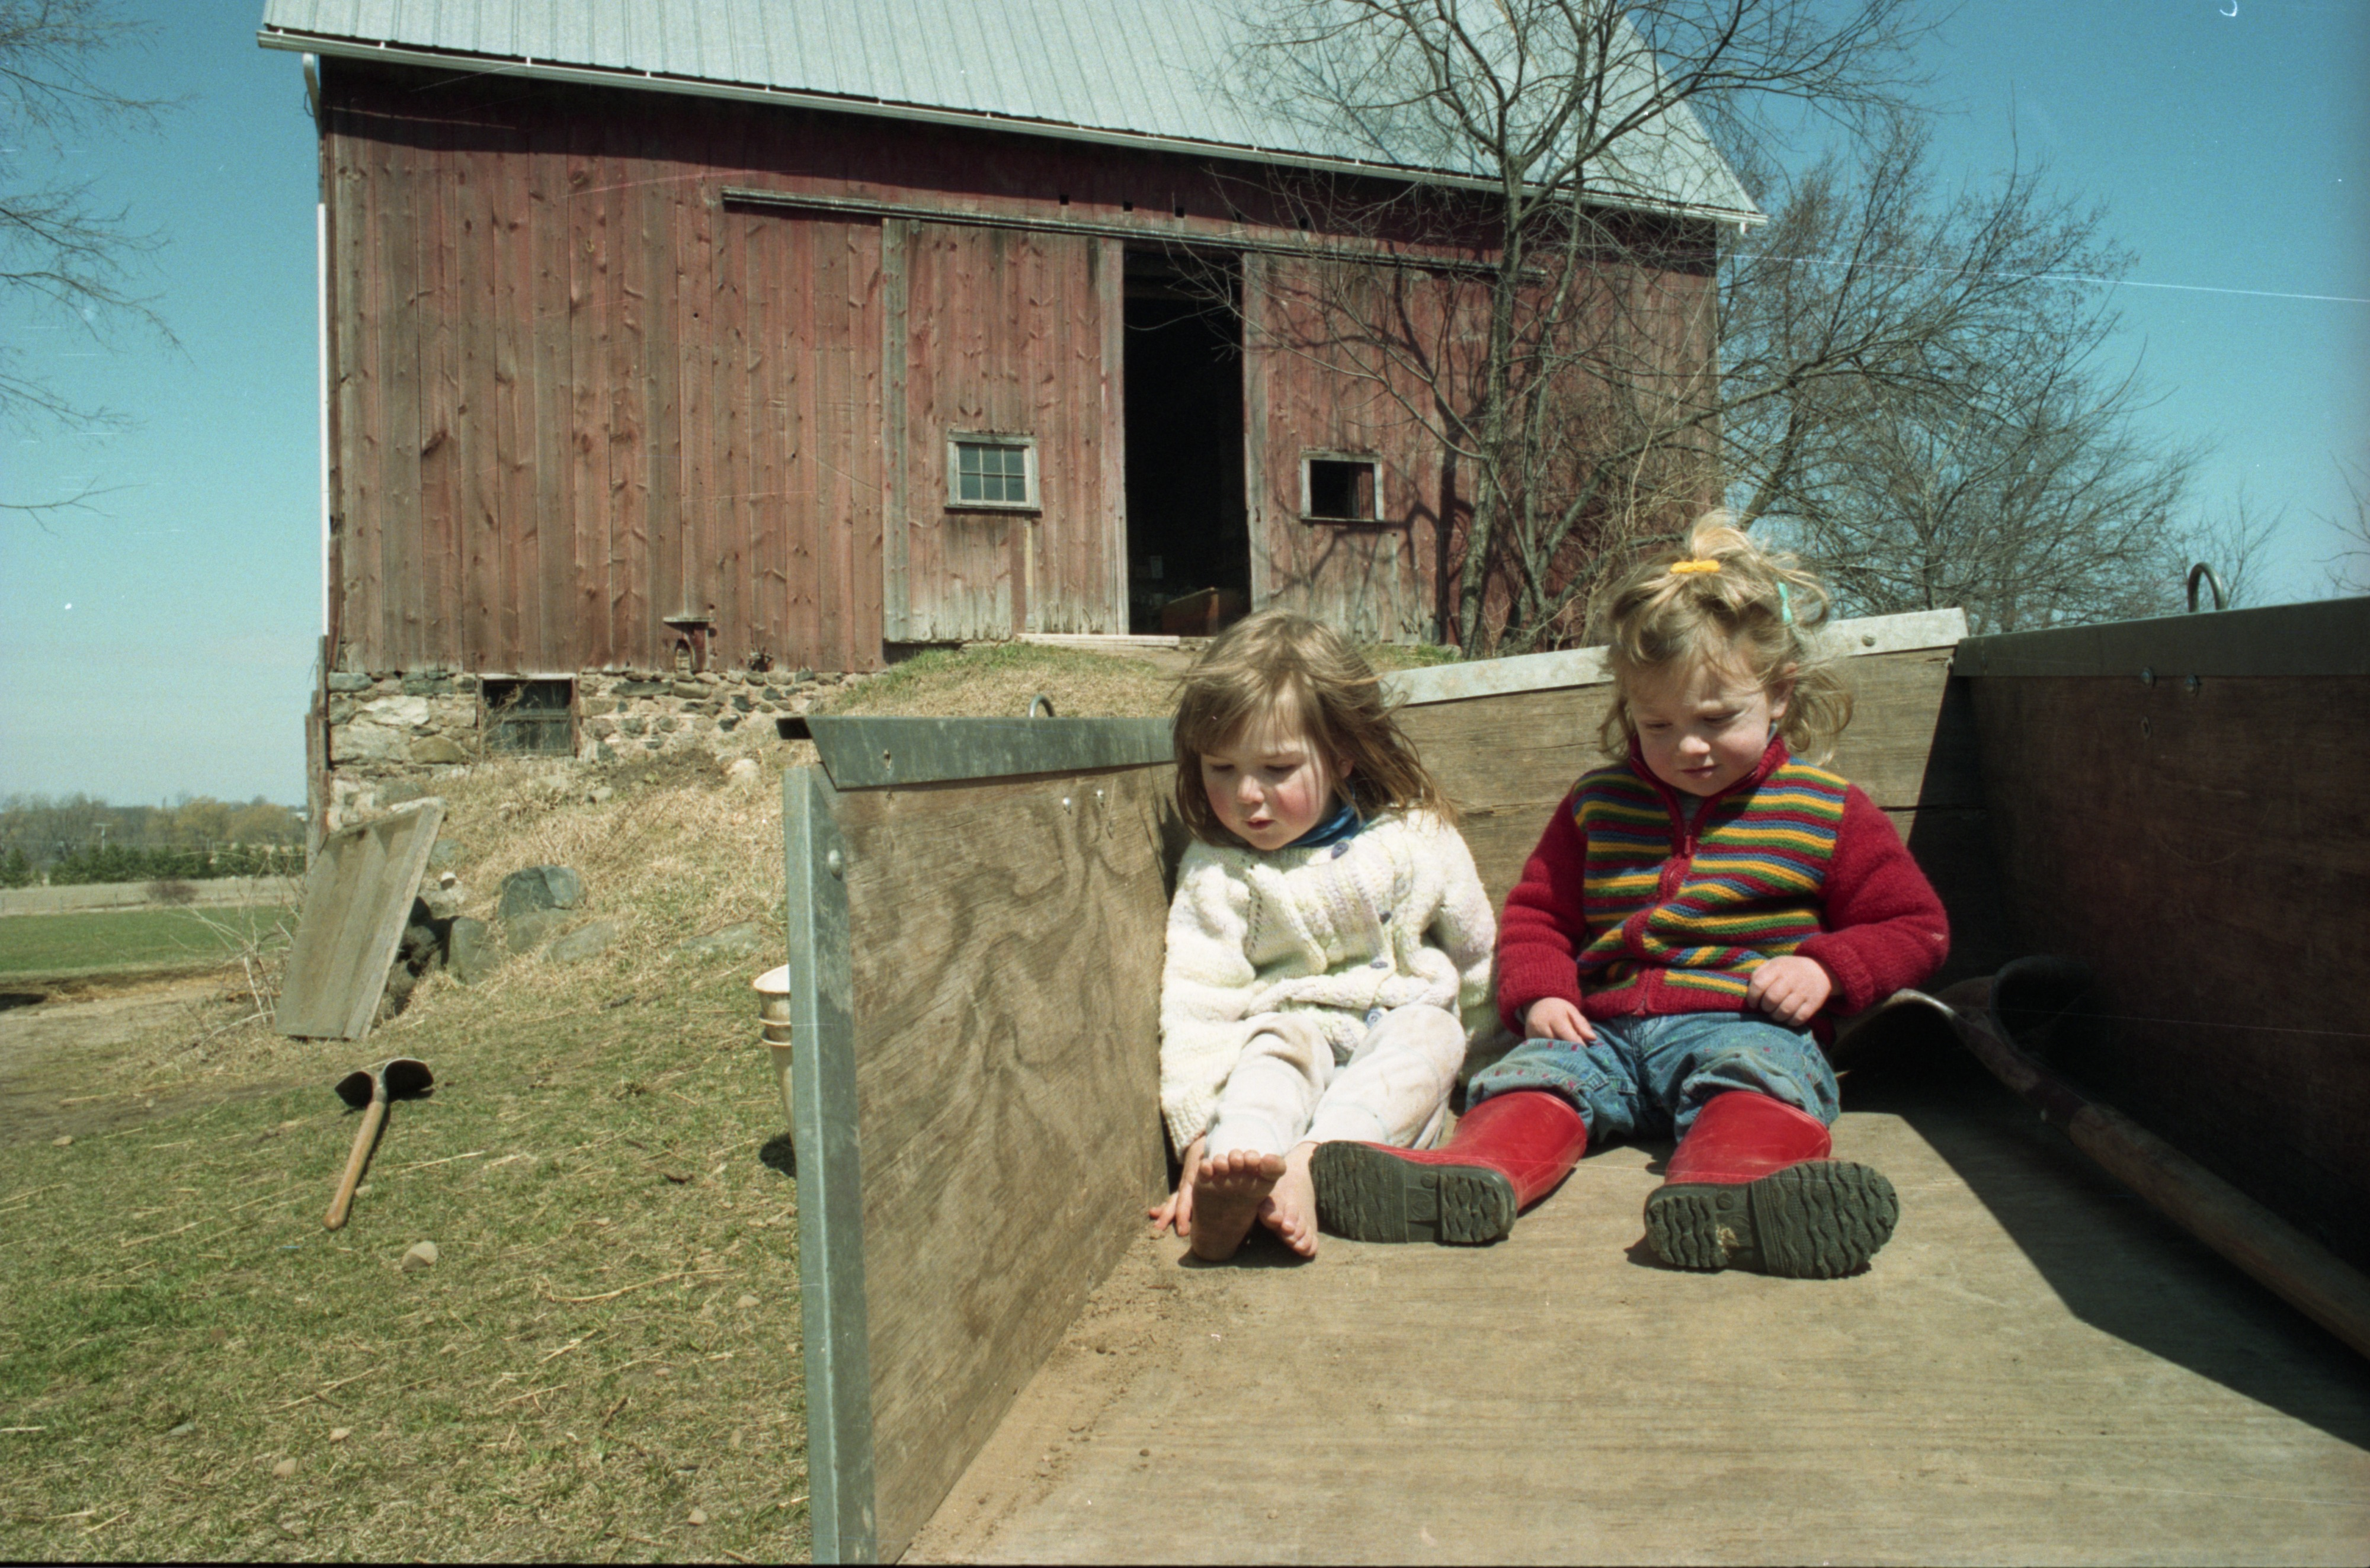 Laura Chalmers & Friend Relax In Wagon At Community Farm, April 1994 image